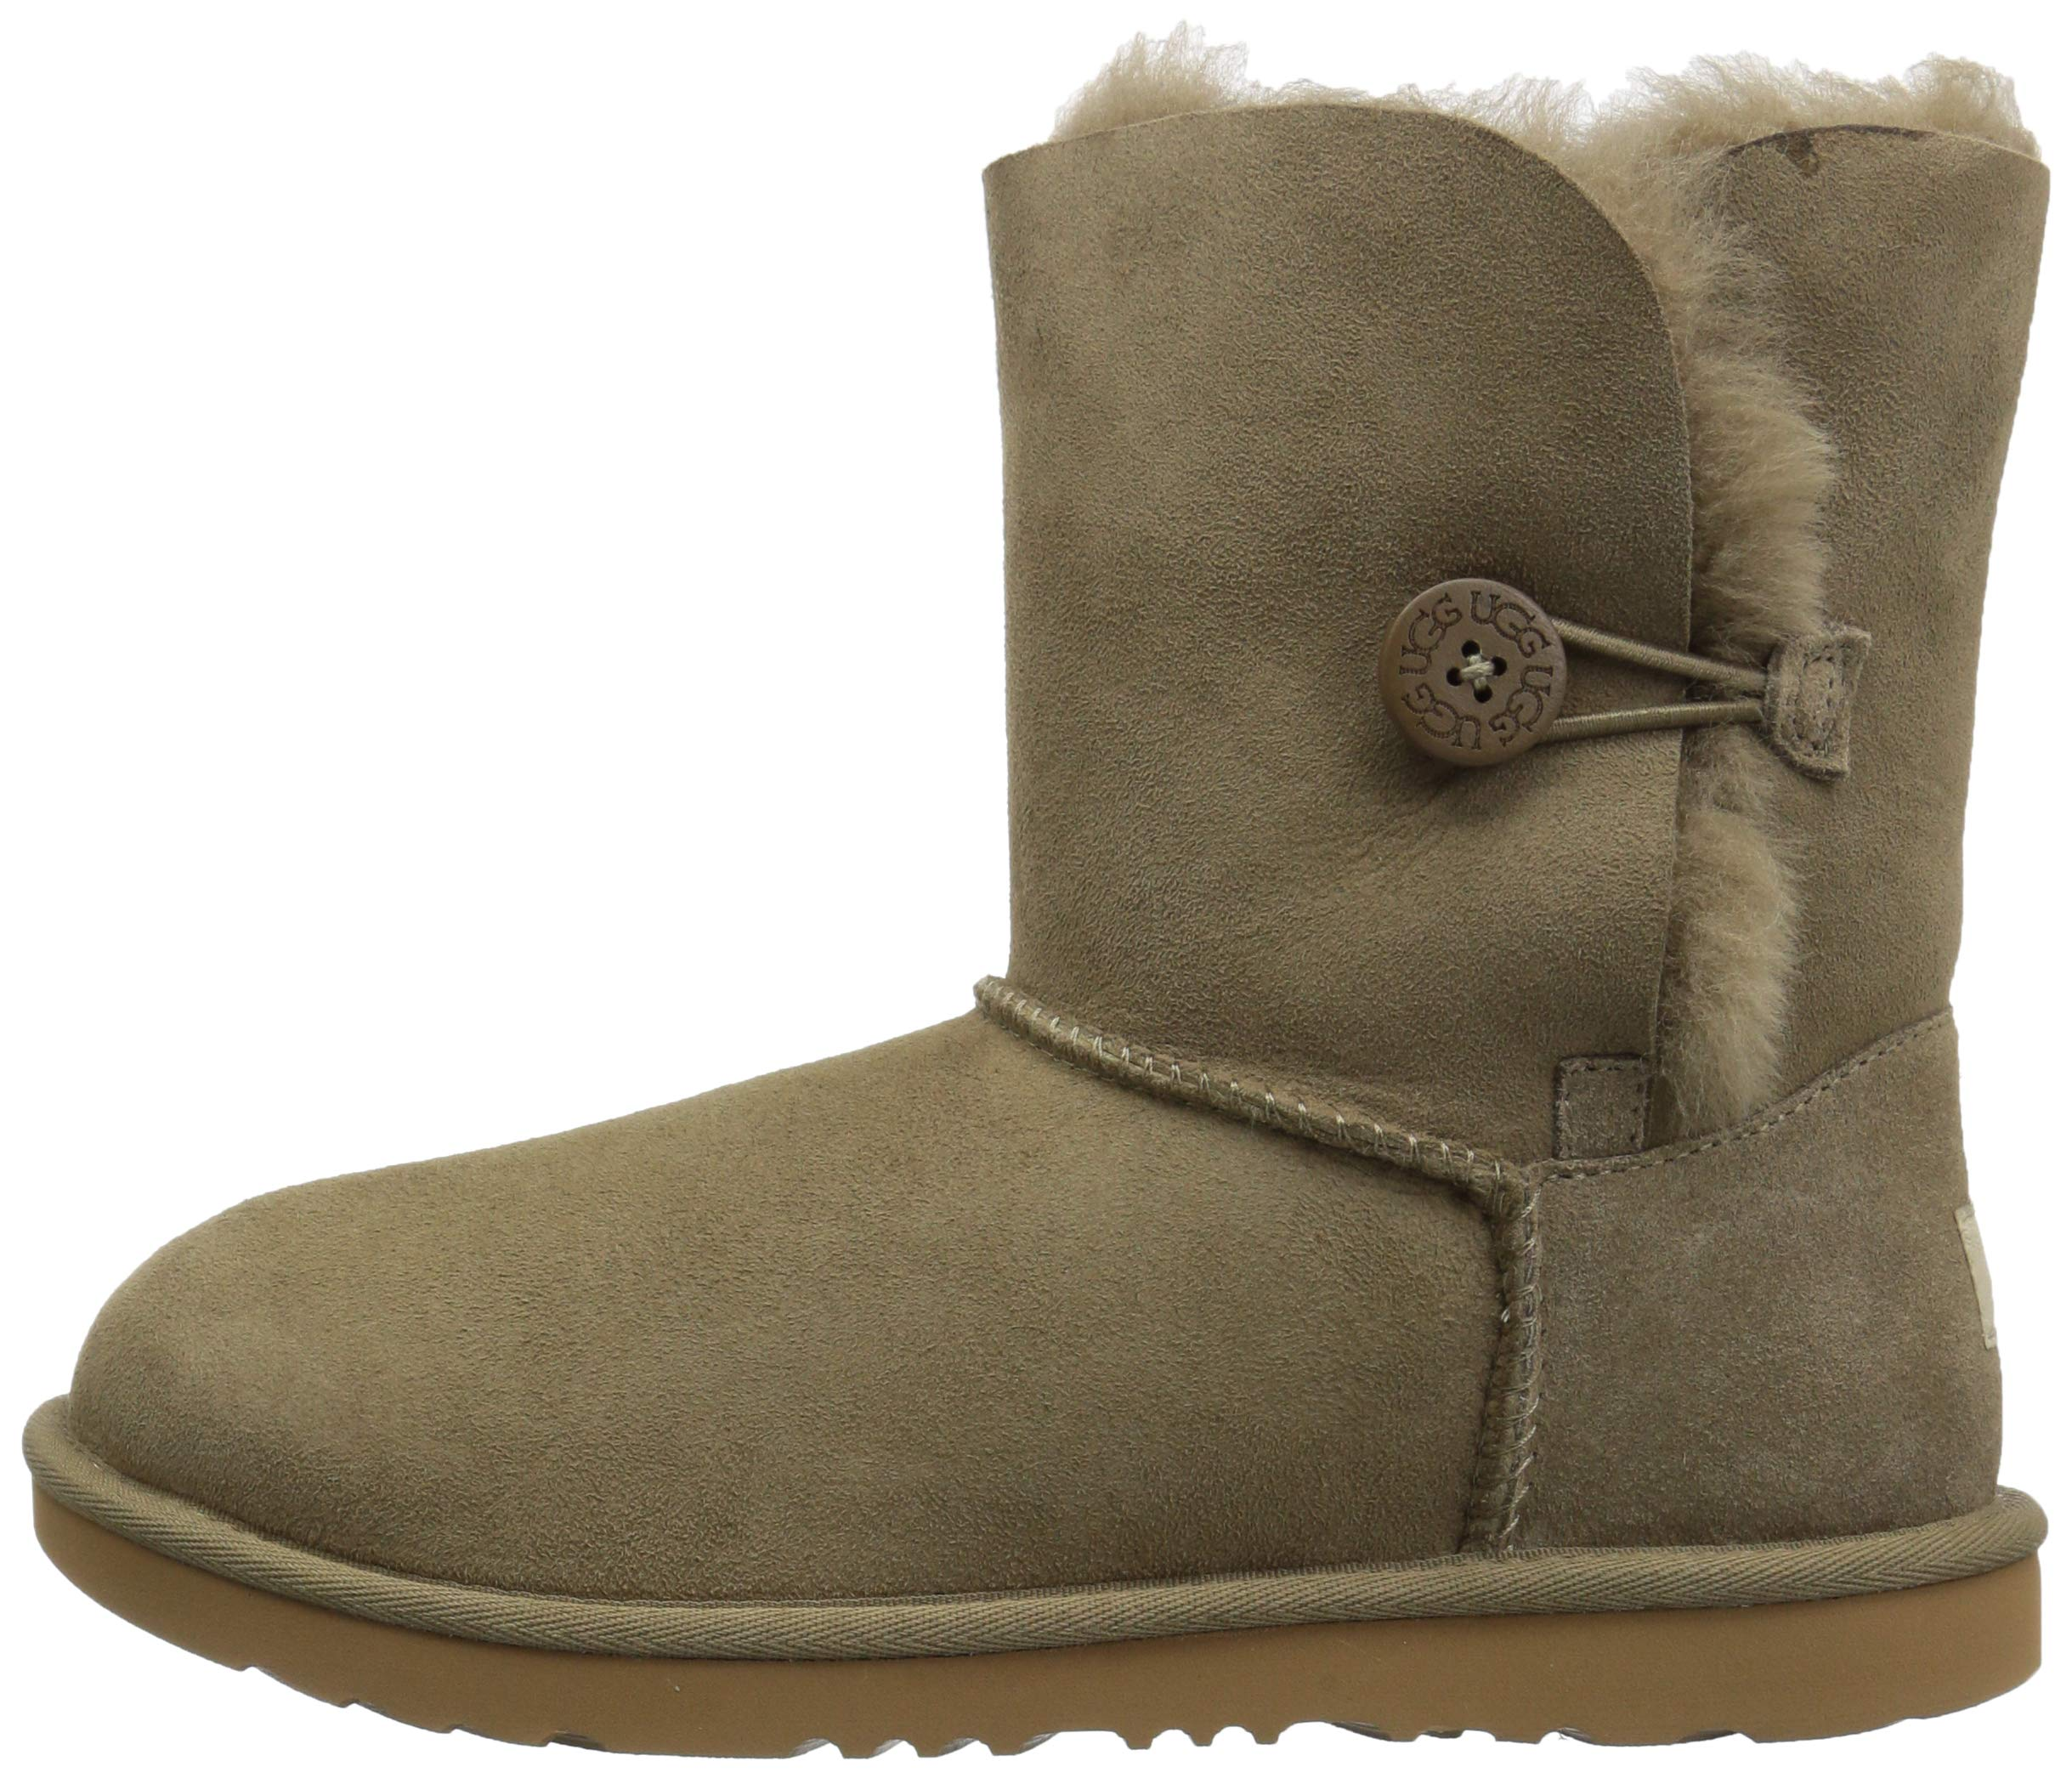 UGG Unisex K Bailey Button II Fashion Boot, Antilope, 13 M US Little Kid by UGG (Image #5)